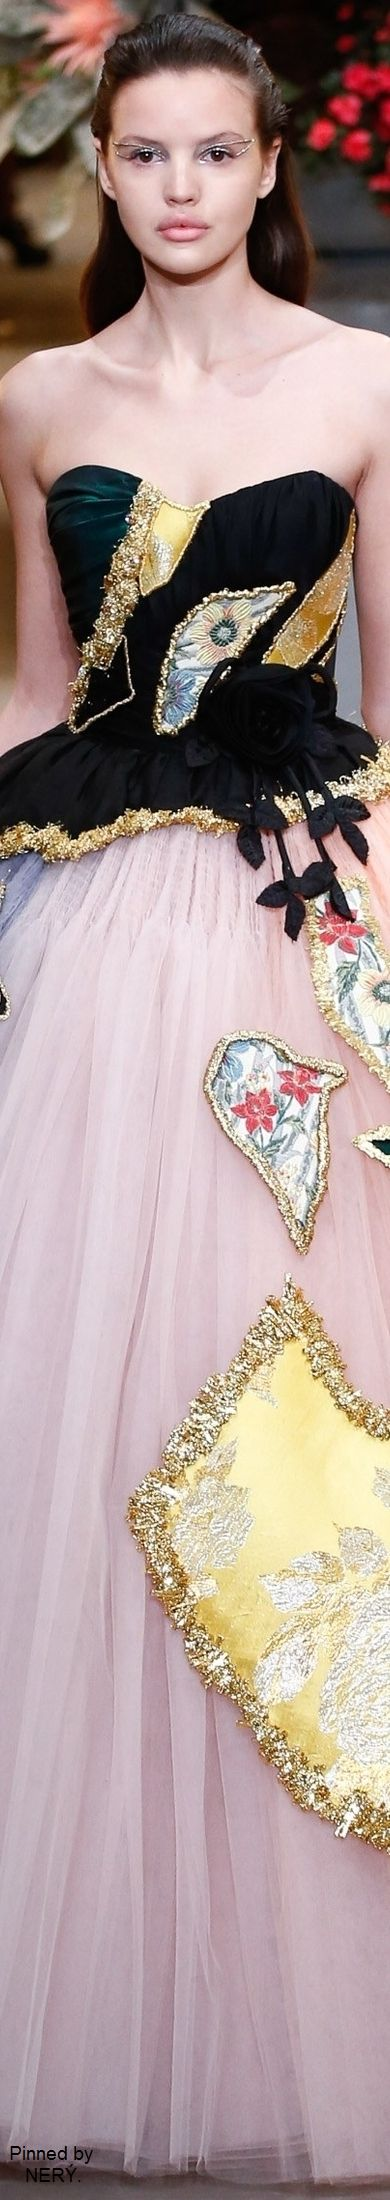 Fashion week 2017 spring - Viktor Amp Rolf Spring 2017 Couture Love Fashion Pinterest